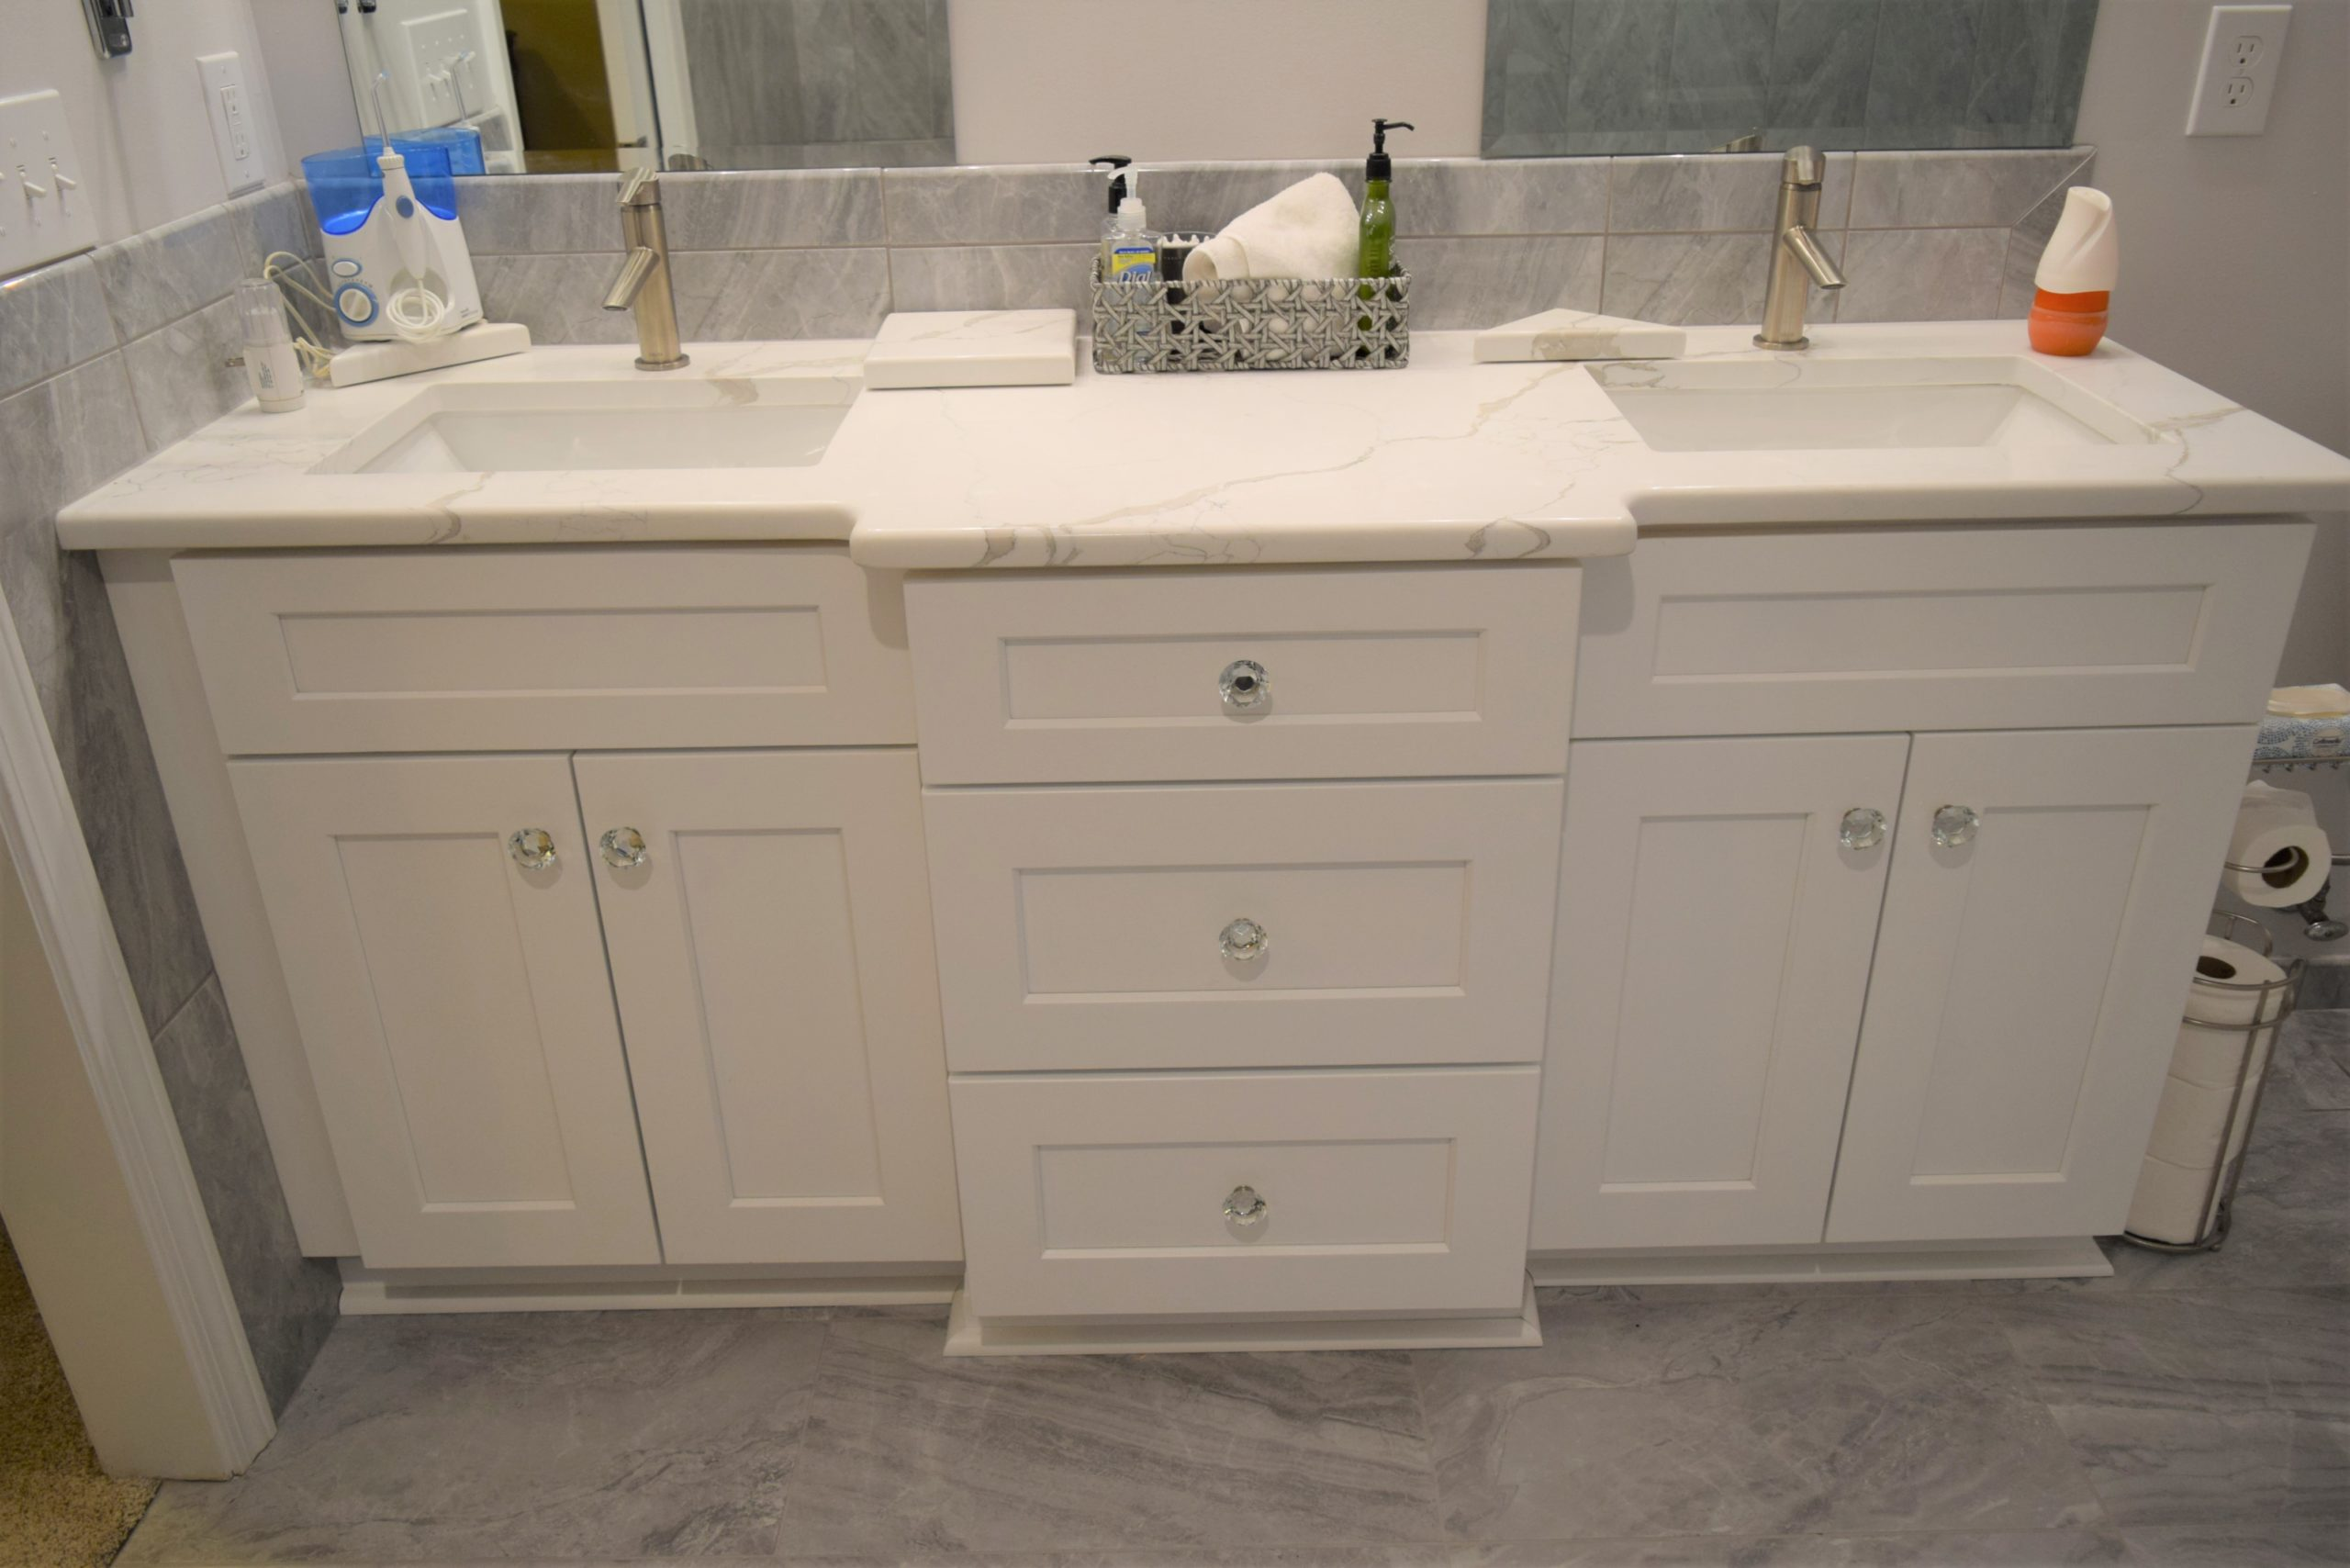 new double vanity in Cornelius home